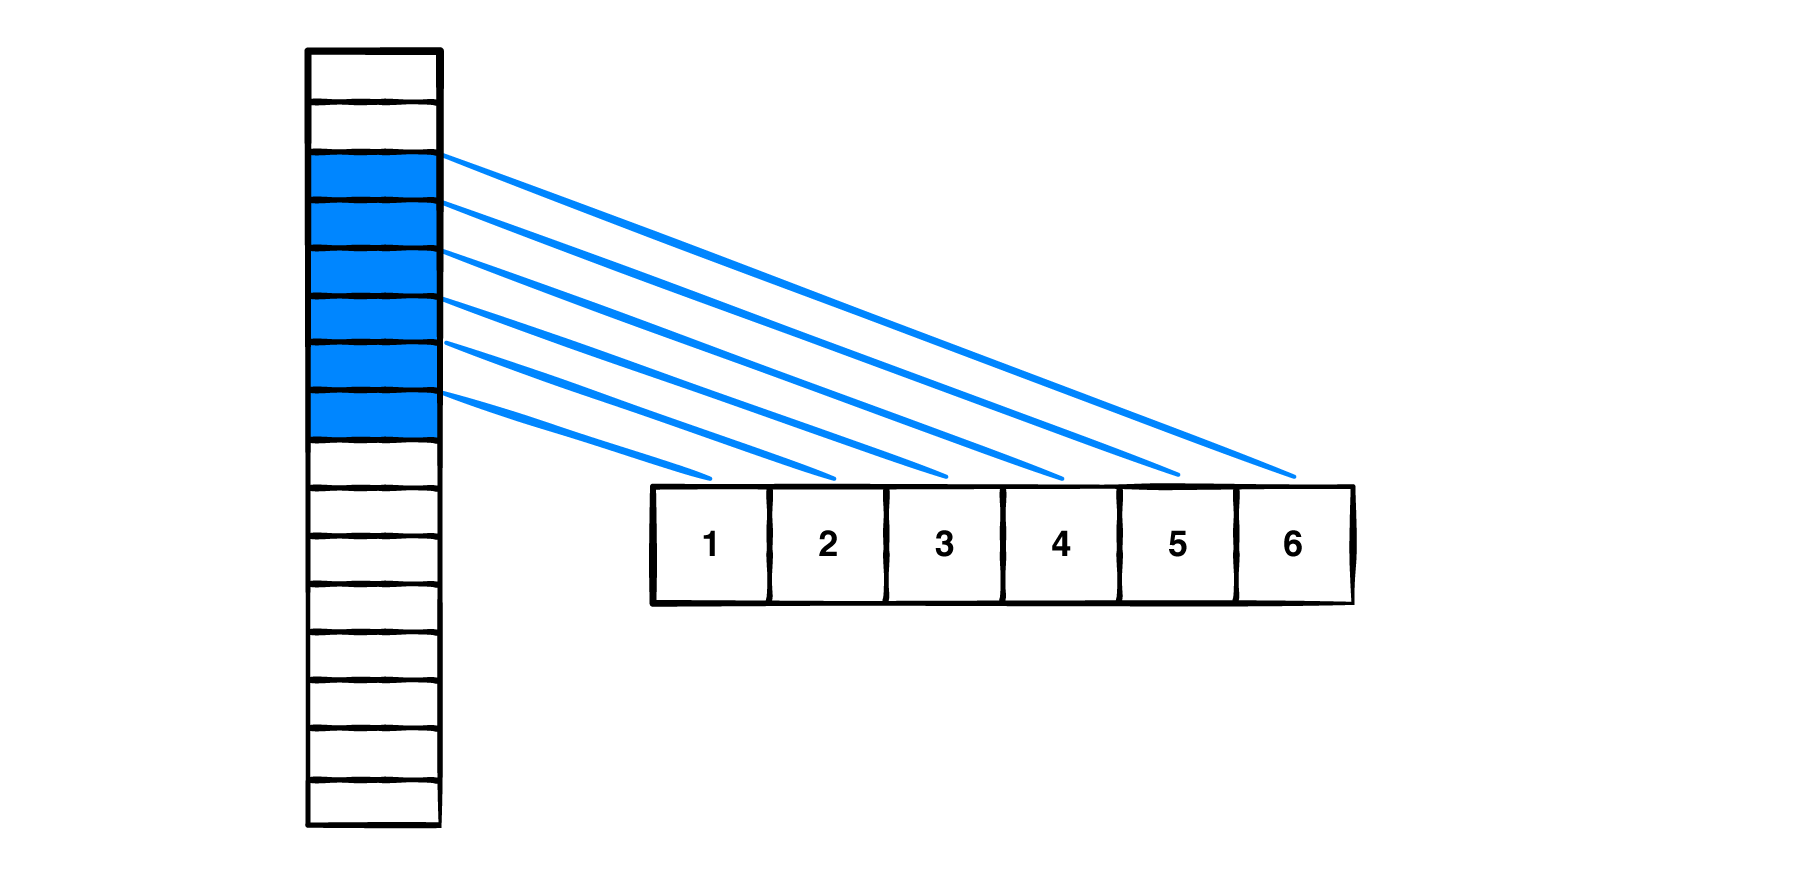 Elements in a contiguous array.